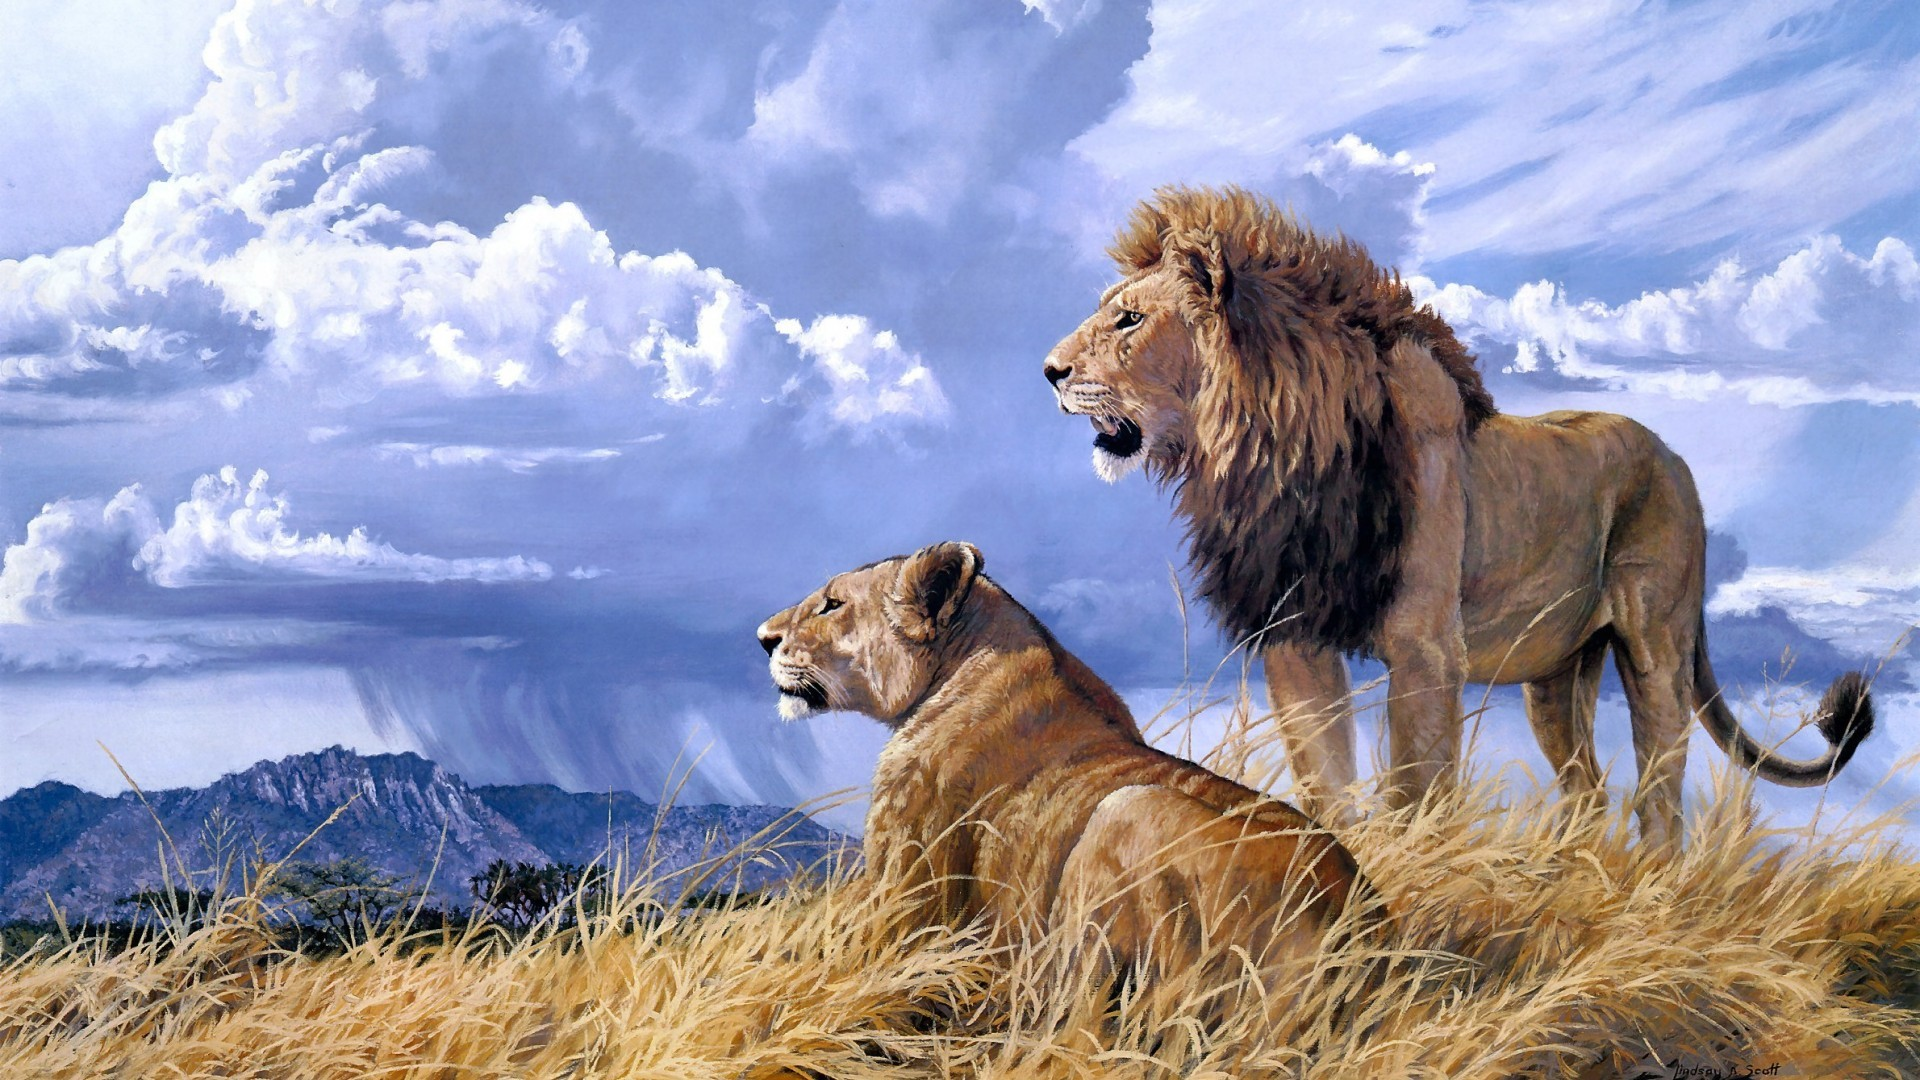 Lion HD Wallpapers Full High Quality New Backgrounds